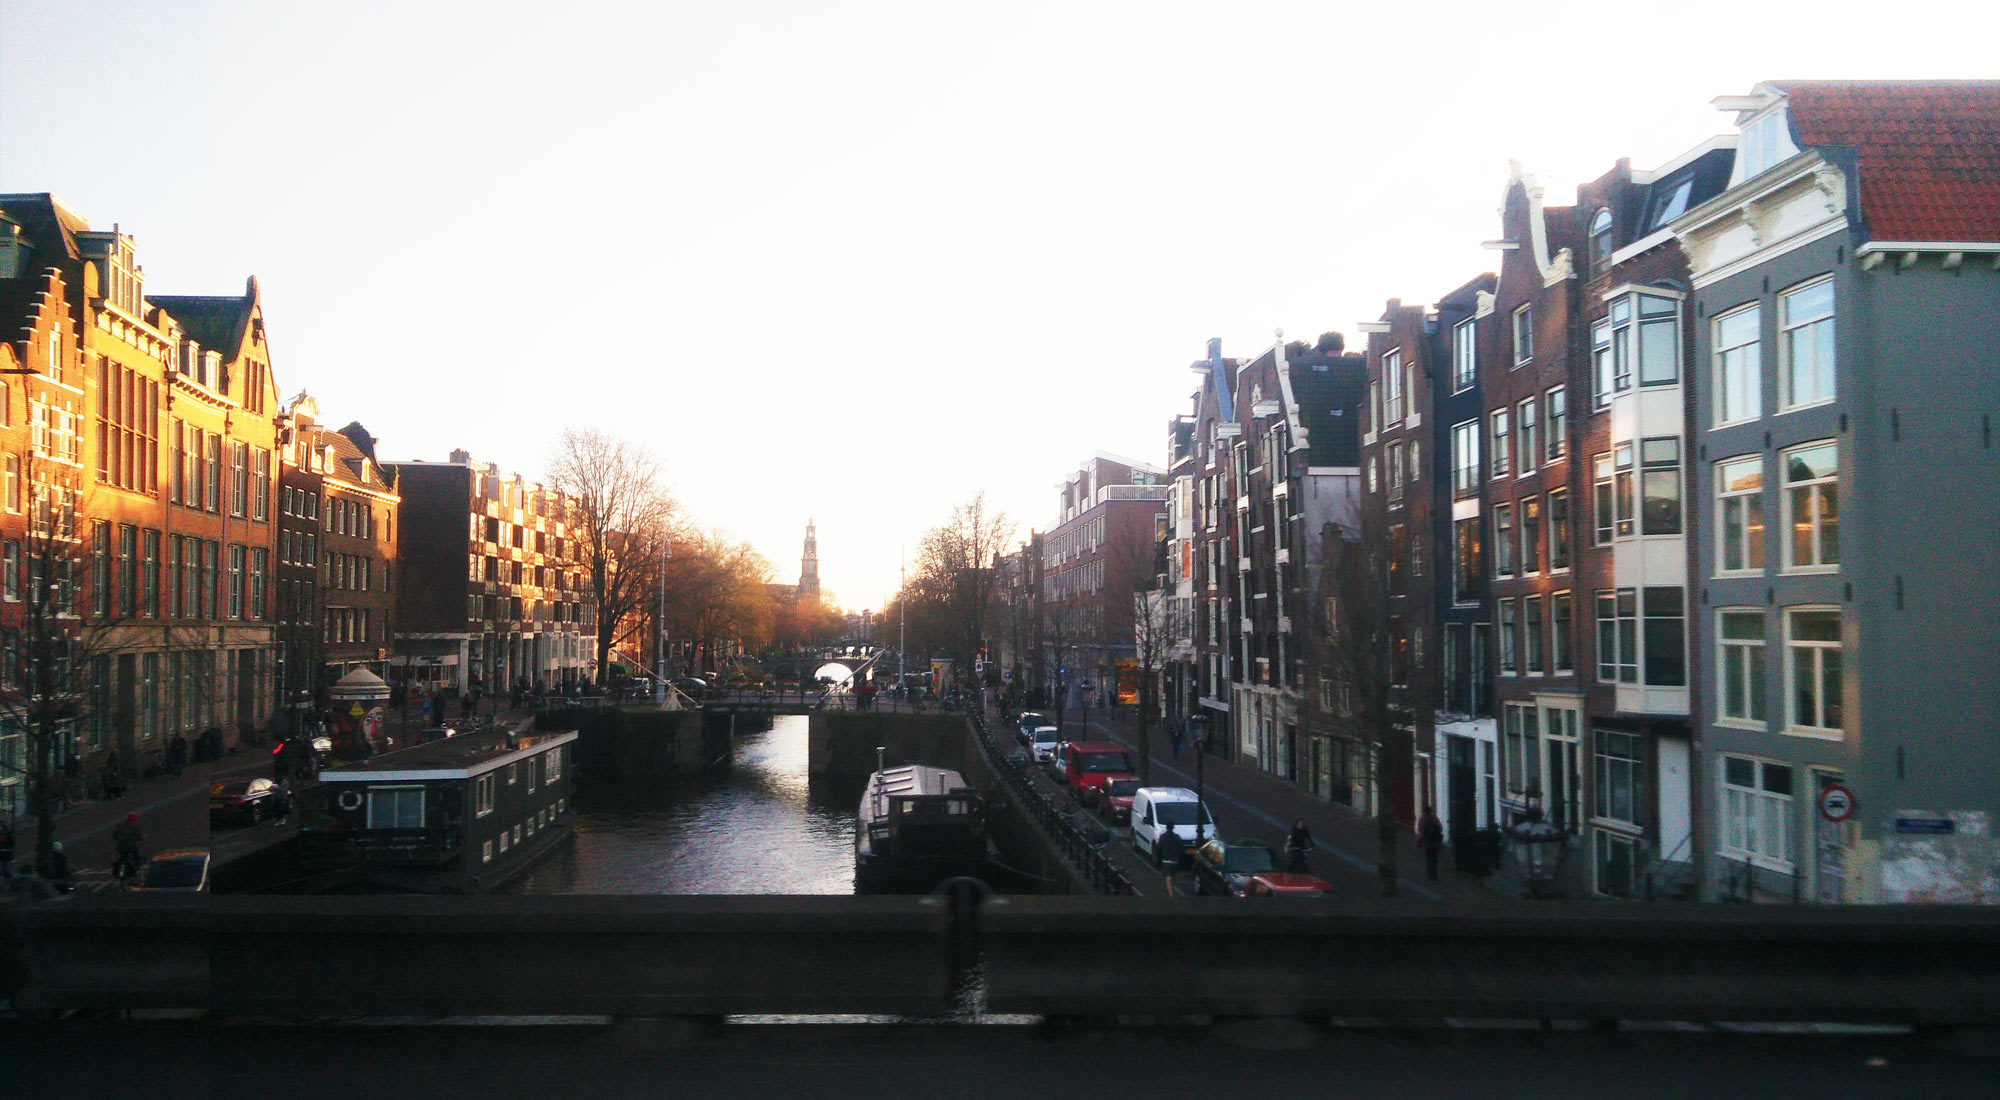 a canal in Amsterdam at sunset